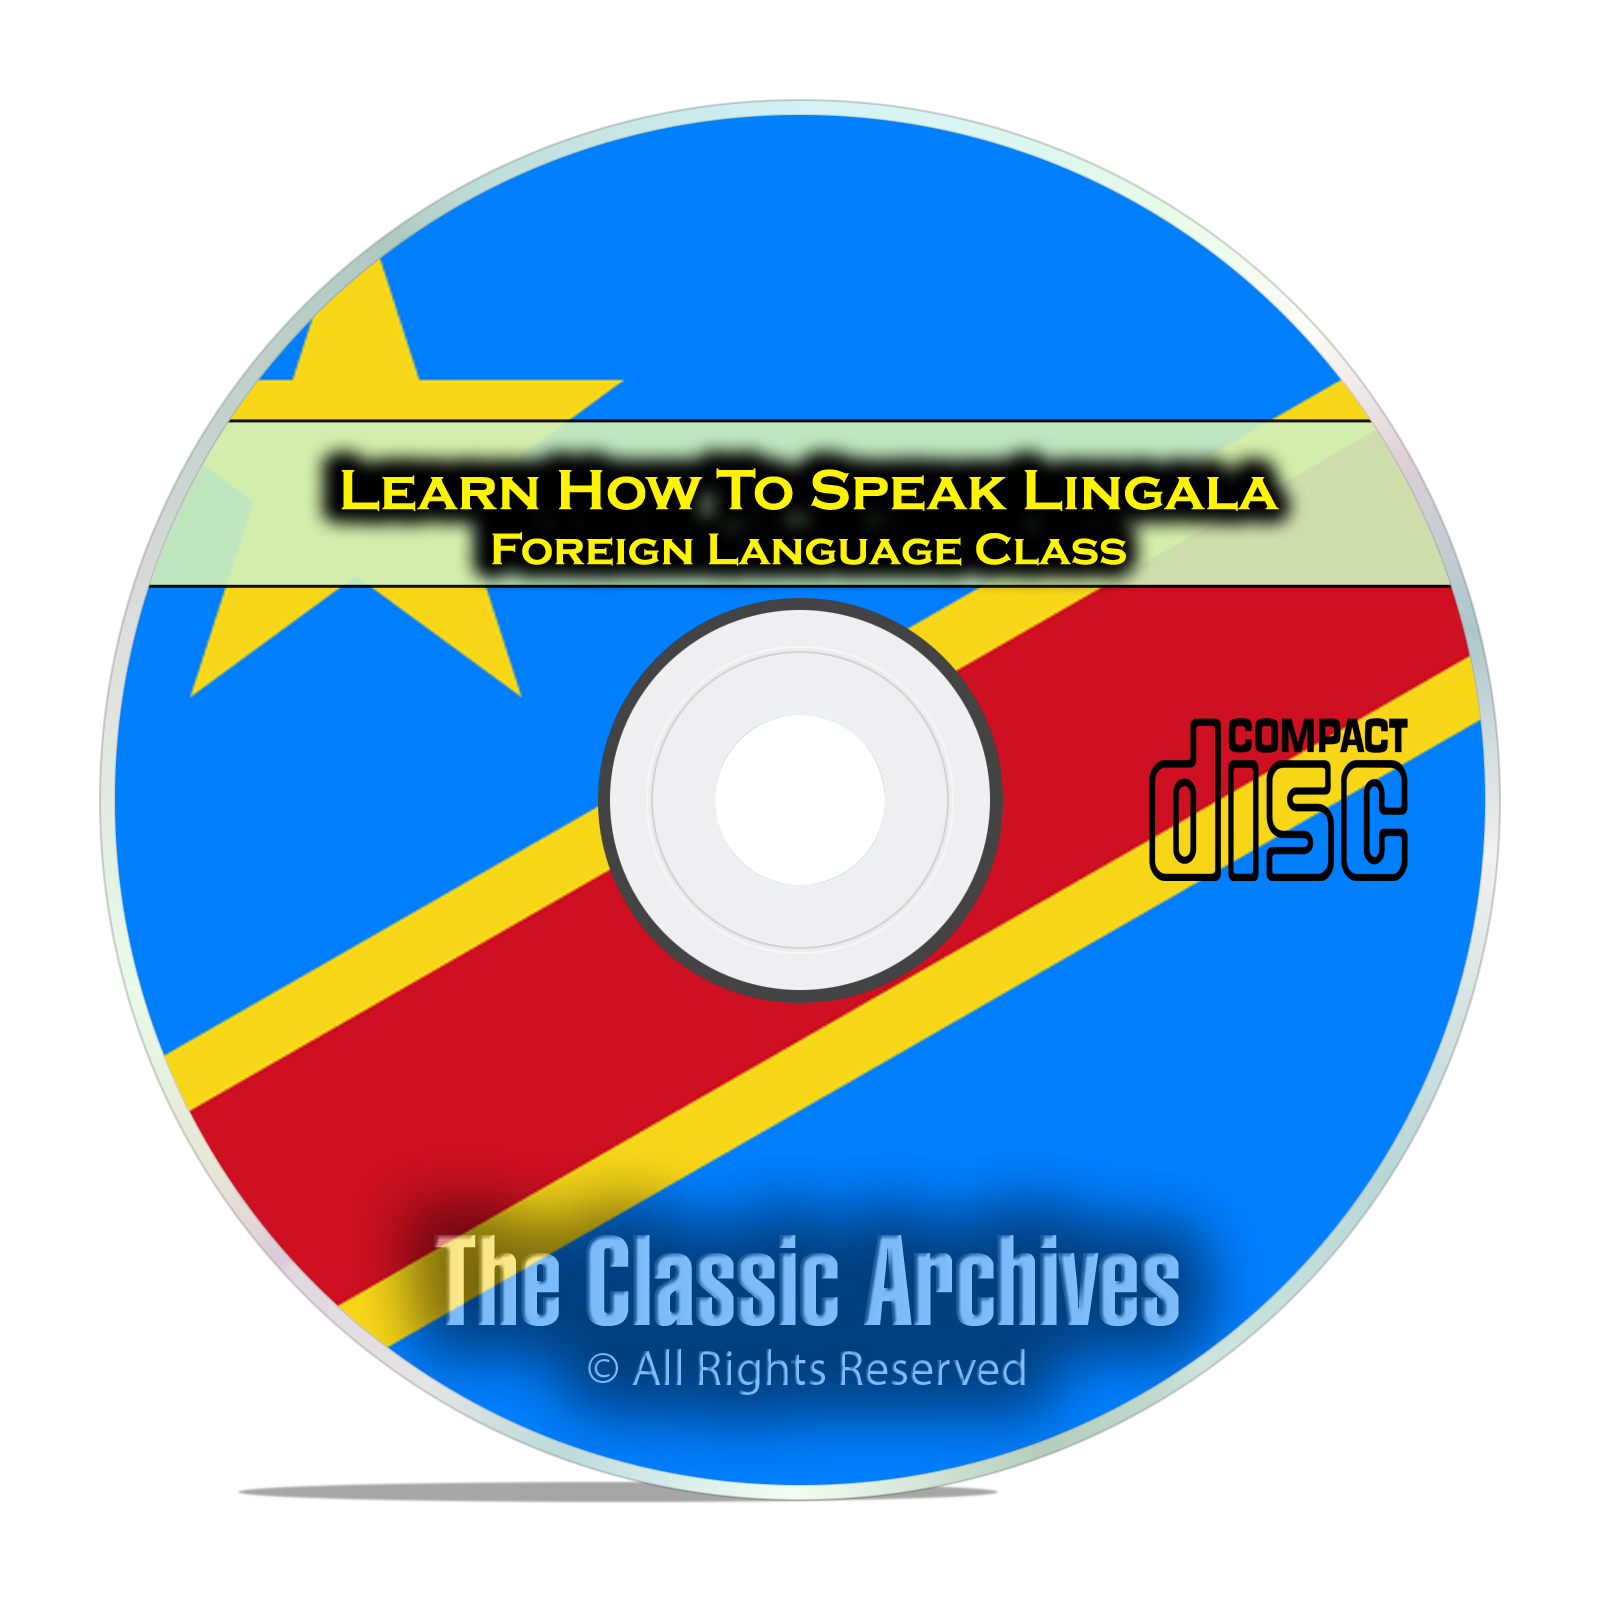 Learn How To Speak Lingala, Fast Foreign Language Training Course, CD